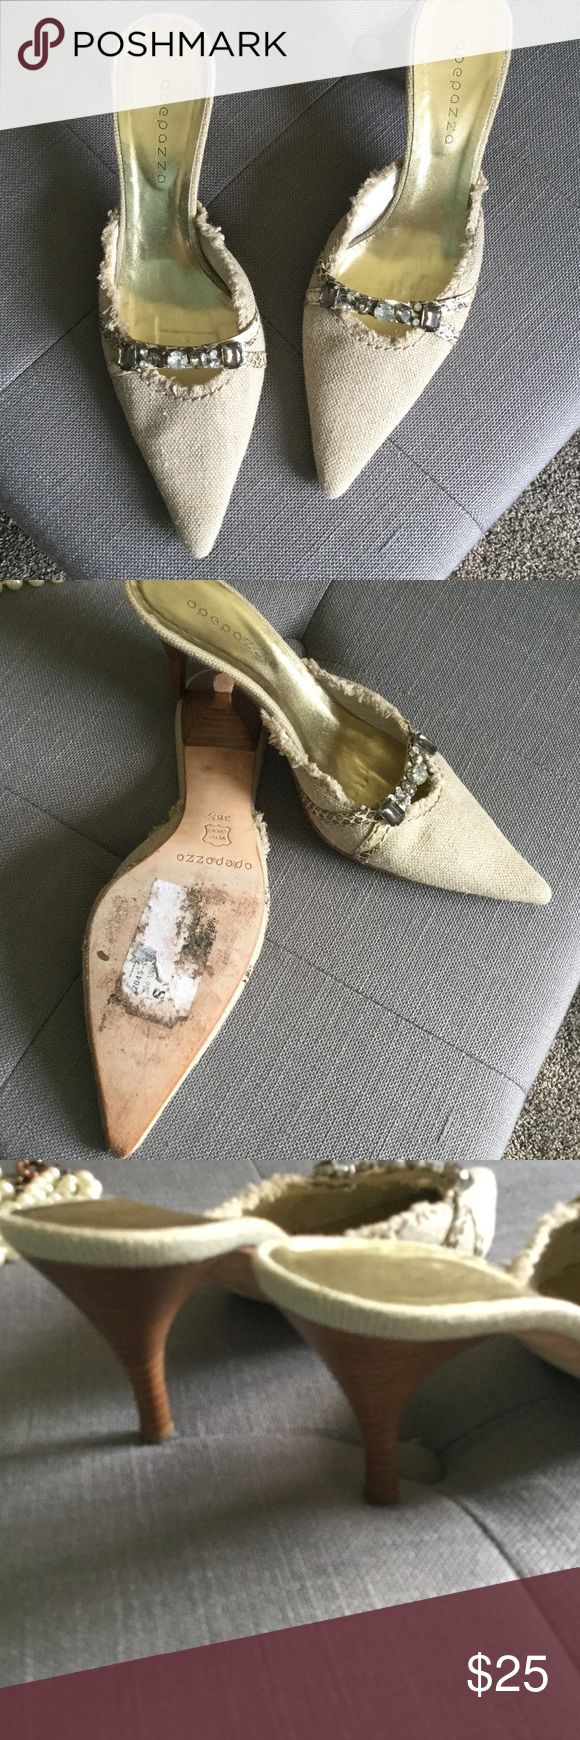 Sparkly mules. Super cute pointy mules. Tan colored with jewels on top. Straps are animal print. About 2 1/2 inches high. Size 38 1/2, which is size 8 1/2. Dress up or down you can't go wrong.worn a handful of times. Apepazza Shoes Heels